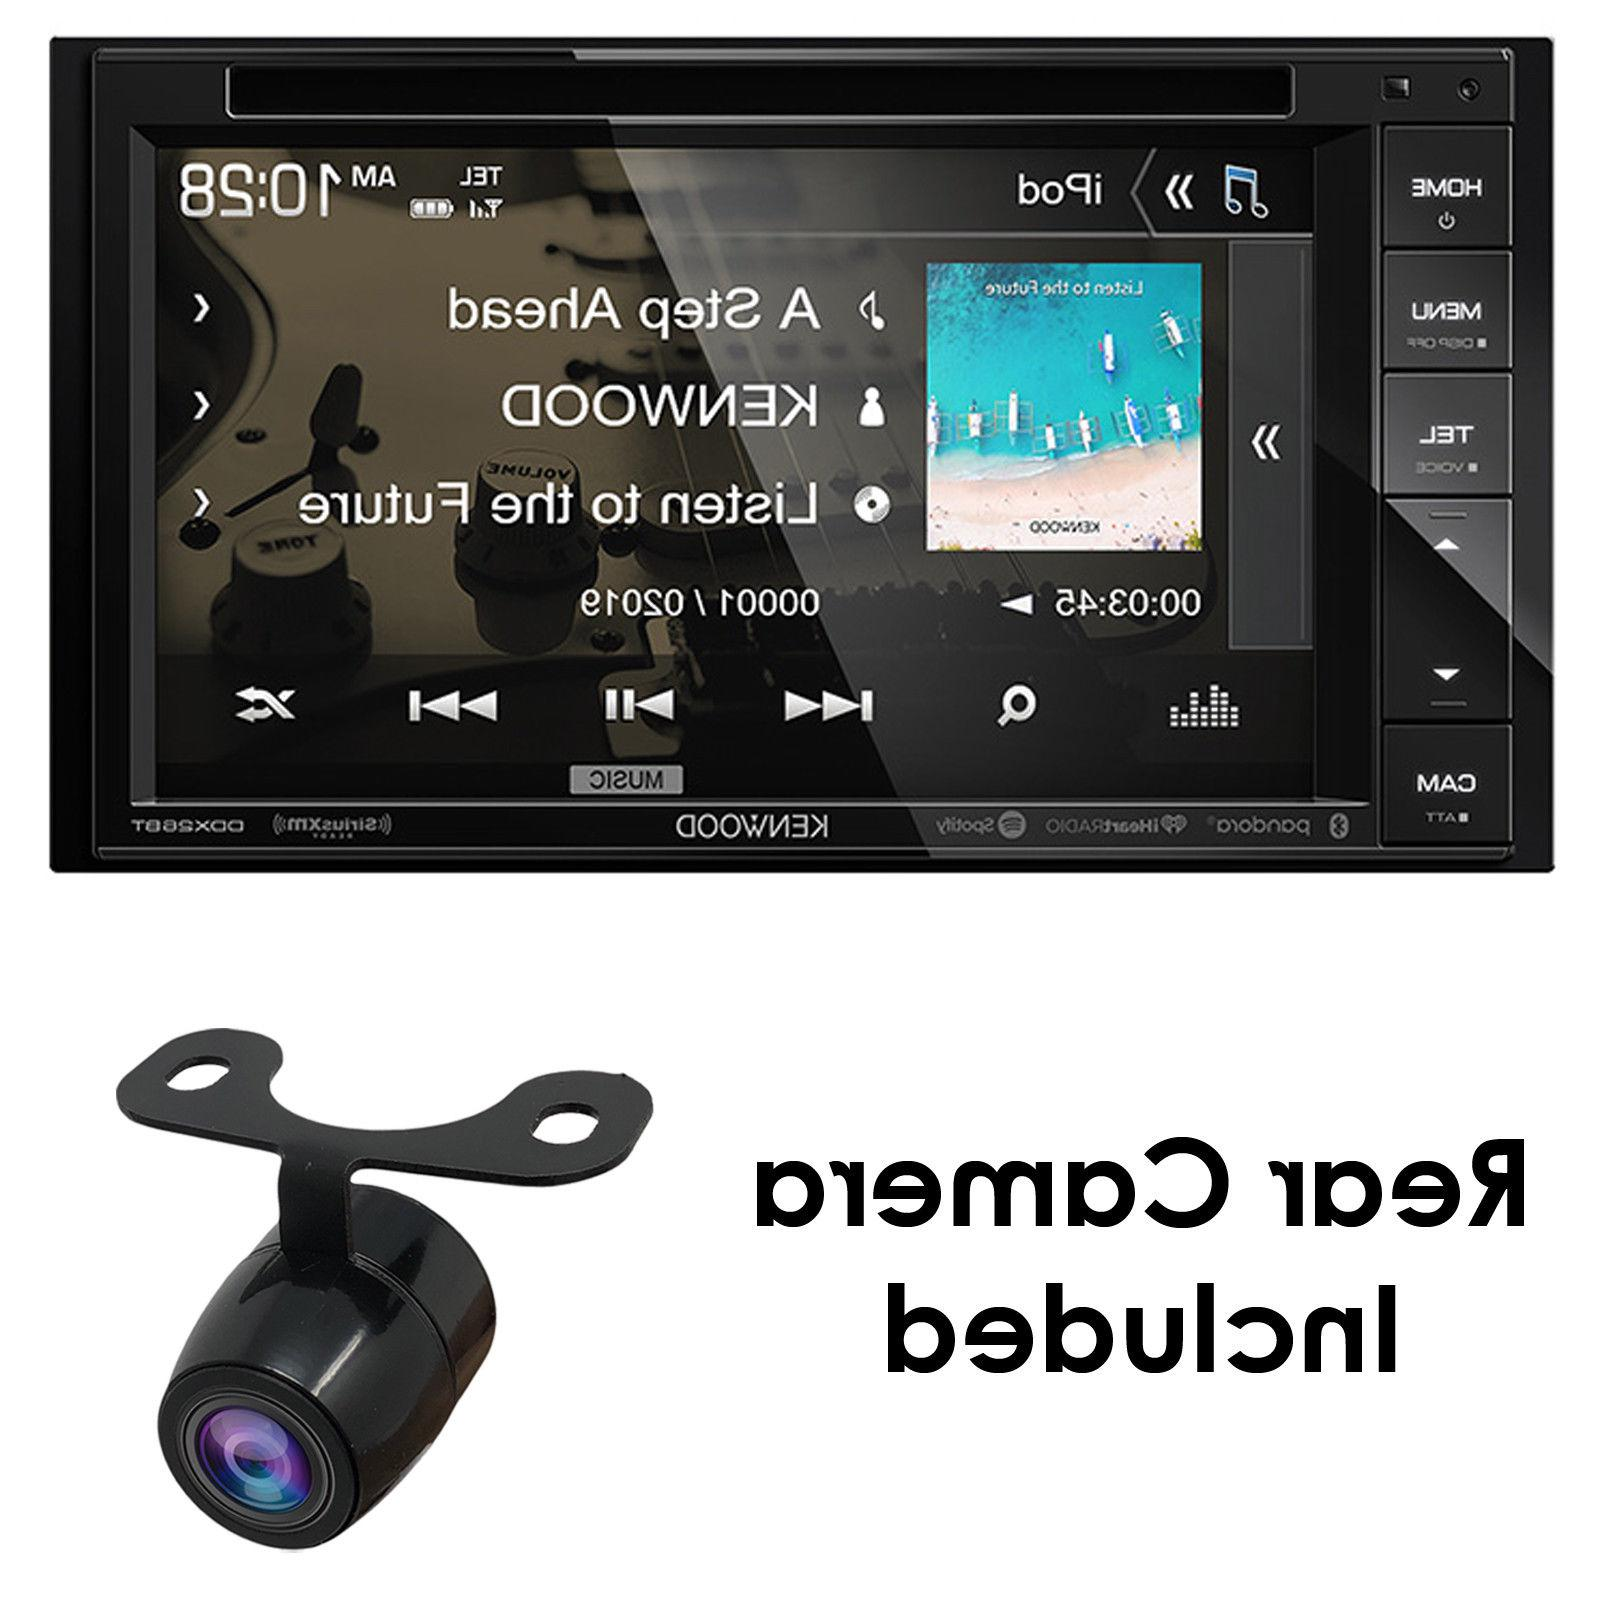 ddx26bt 6 2 double din touchscreen car